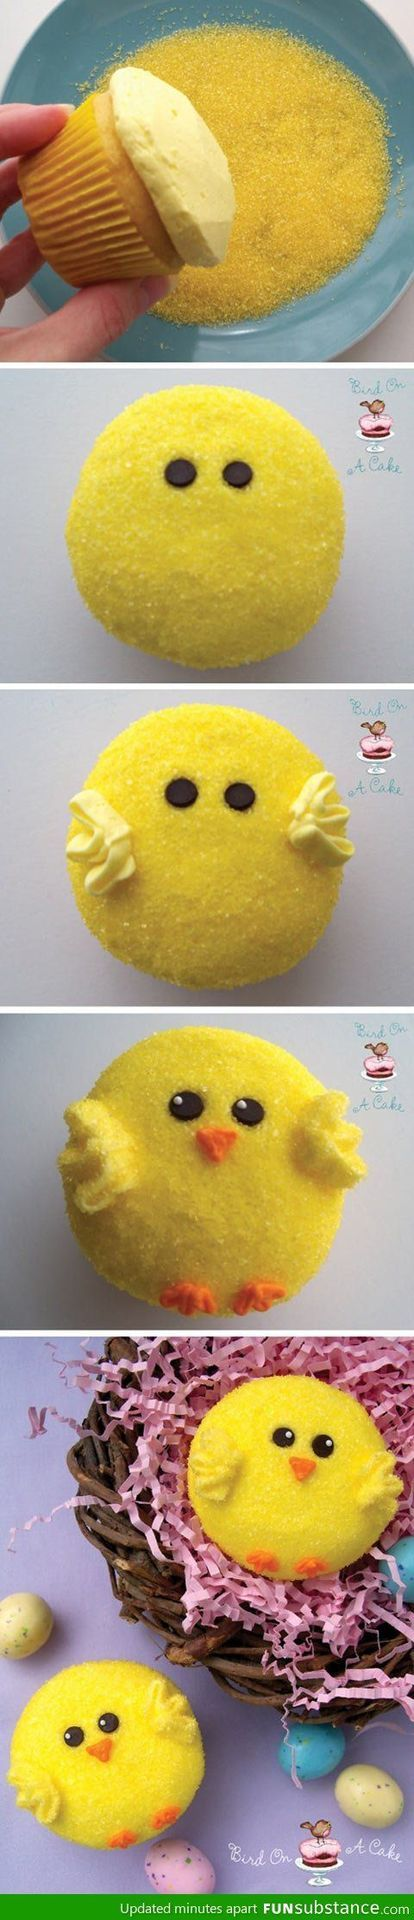 Easter Chick Cupcakes - very cute!